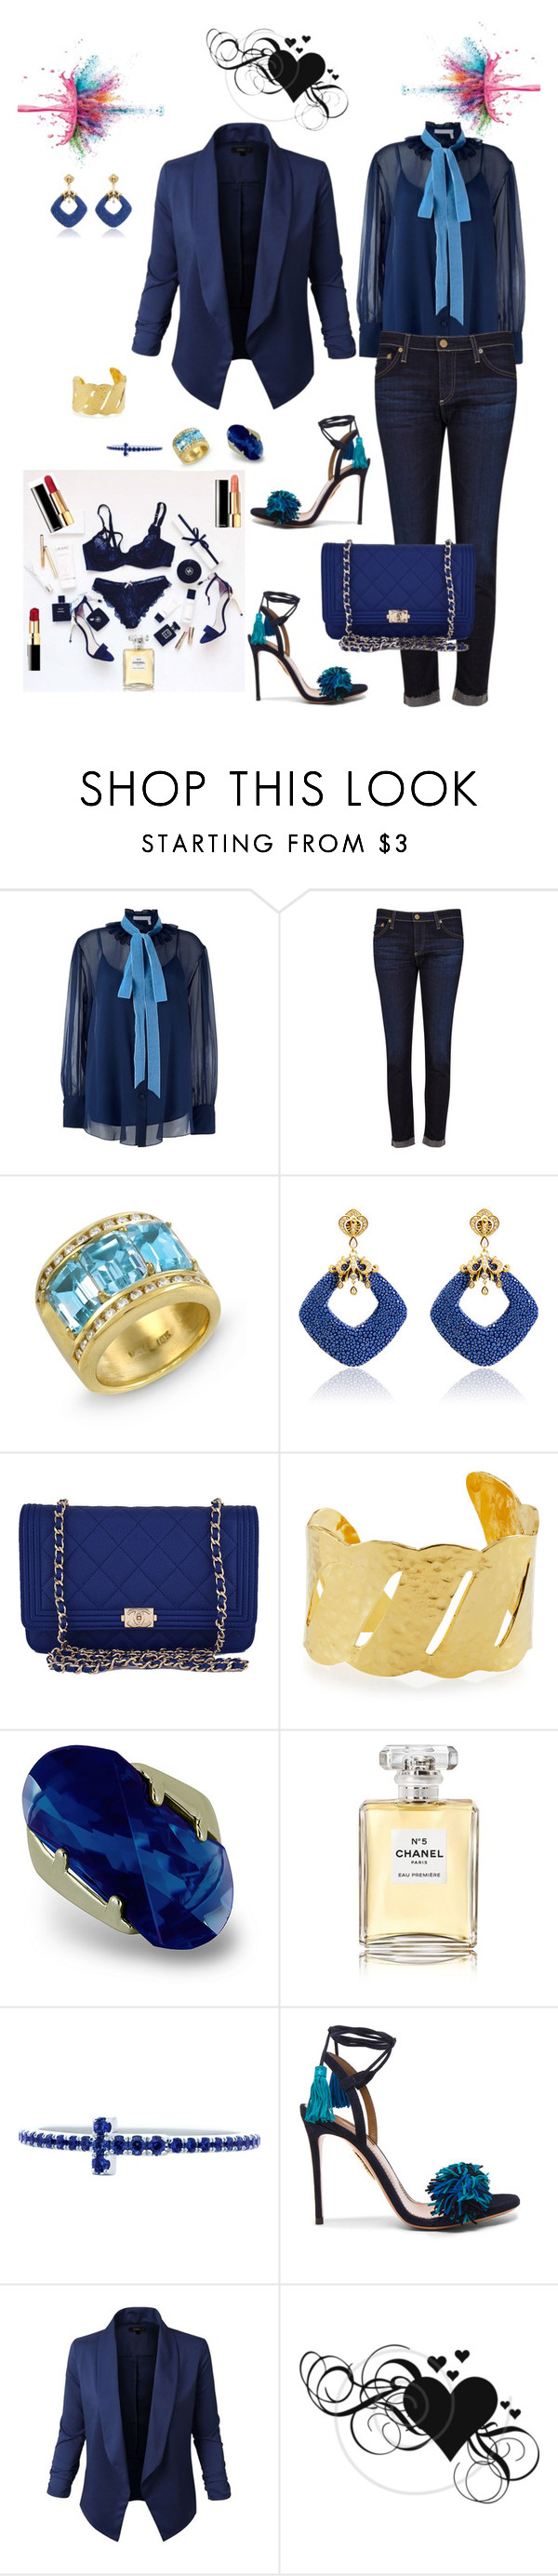 """Untitled #663"" by lianatzelese ❤ liked on Polyvore featuring See by Chloé, AG Adriano Goldschmied, Chanel, Devon Leigh, Amabel Designs, Tiffany & Co., Aquazzura, Jupe de Abby and Givenchy"